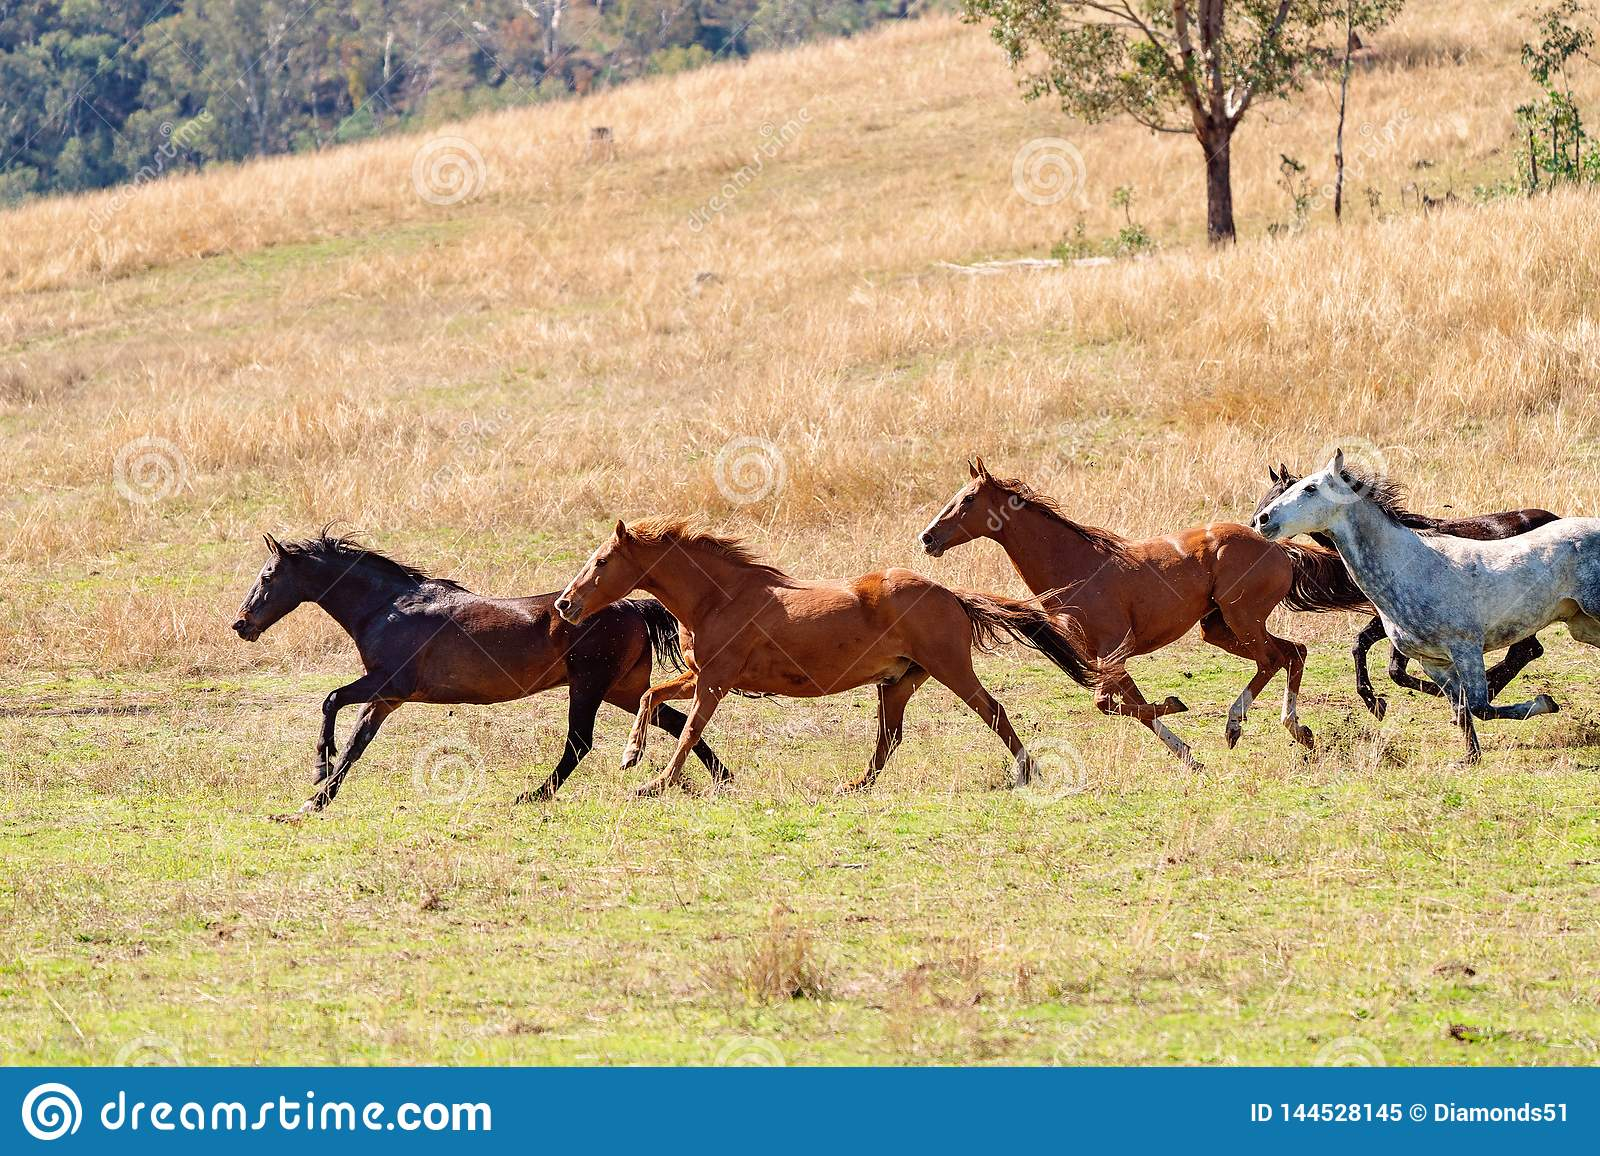 A Herd Of Wild Horses Racing Across Country Stock Image Image Of Mammal Herd 144528145